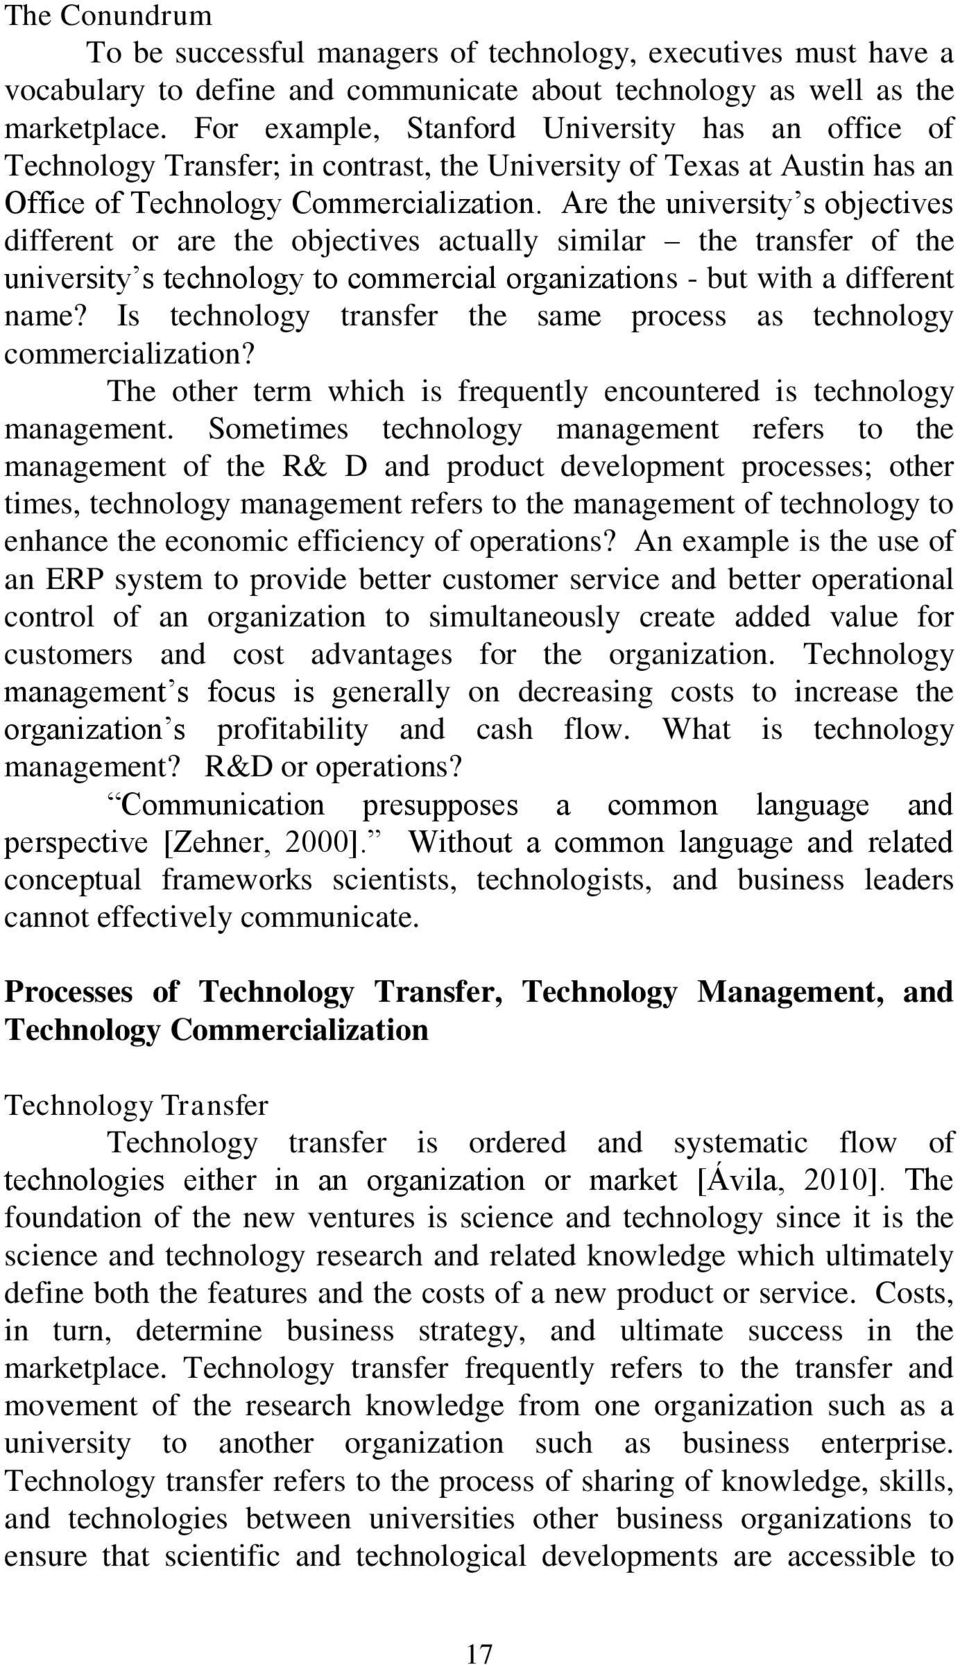 Are the university s objectives different or are the objectives actually similar the transfer of the university s technology to commercial organizations - but with a different name?